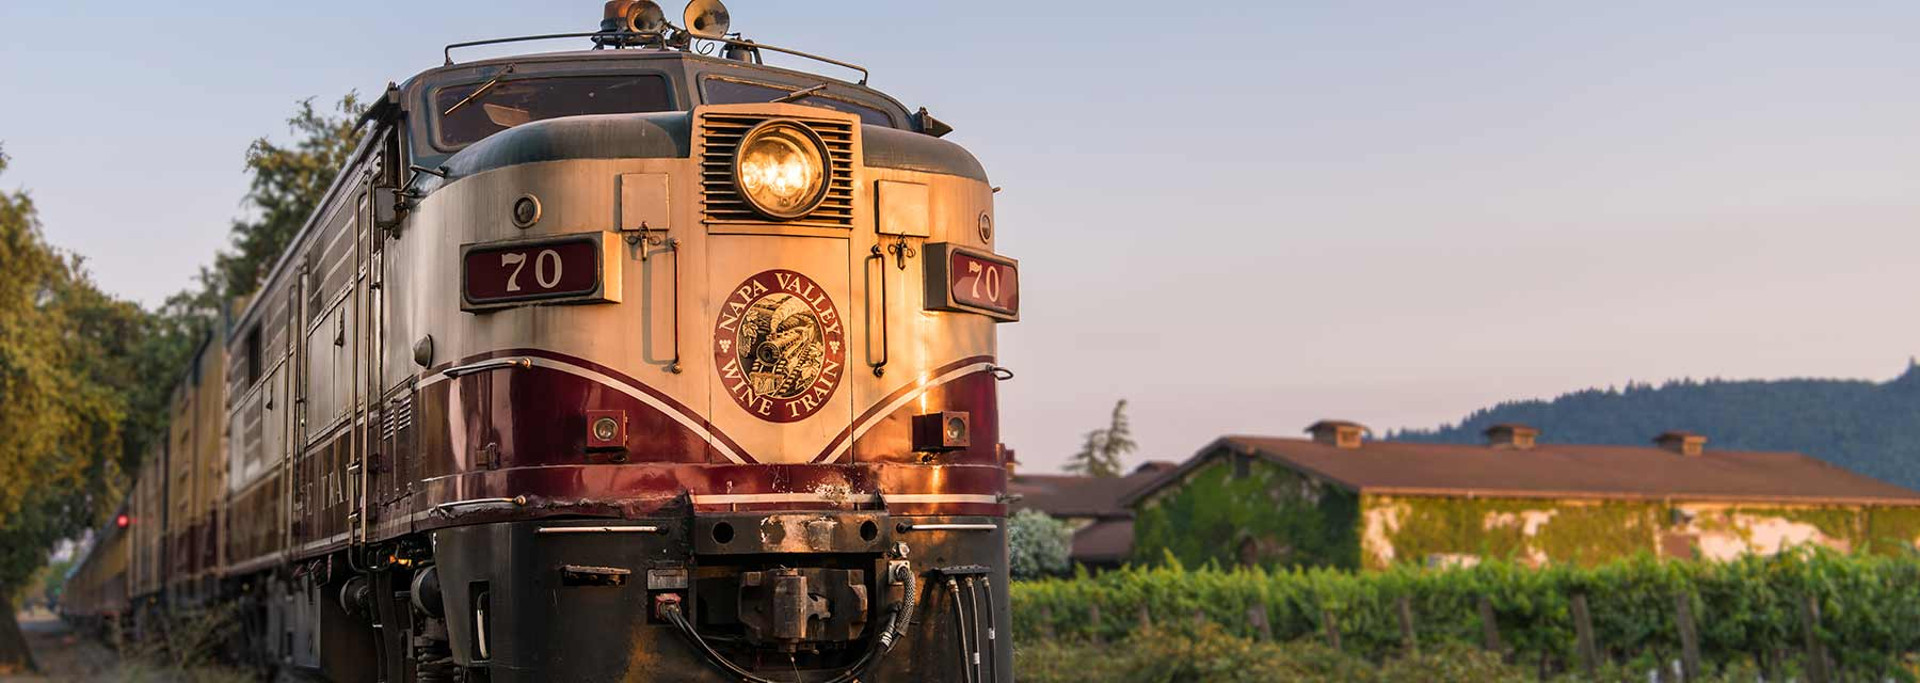 exterior of Napa Valley Wine Train travelling through vineyard with vine-covered building in background